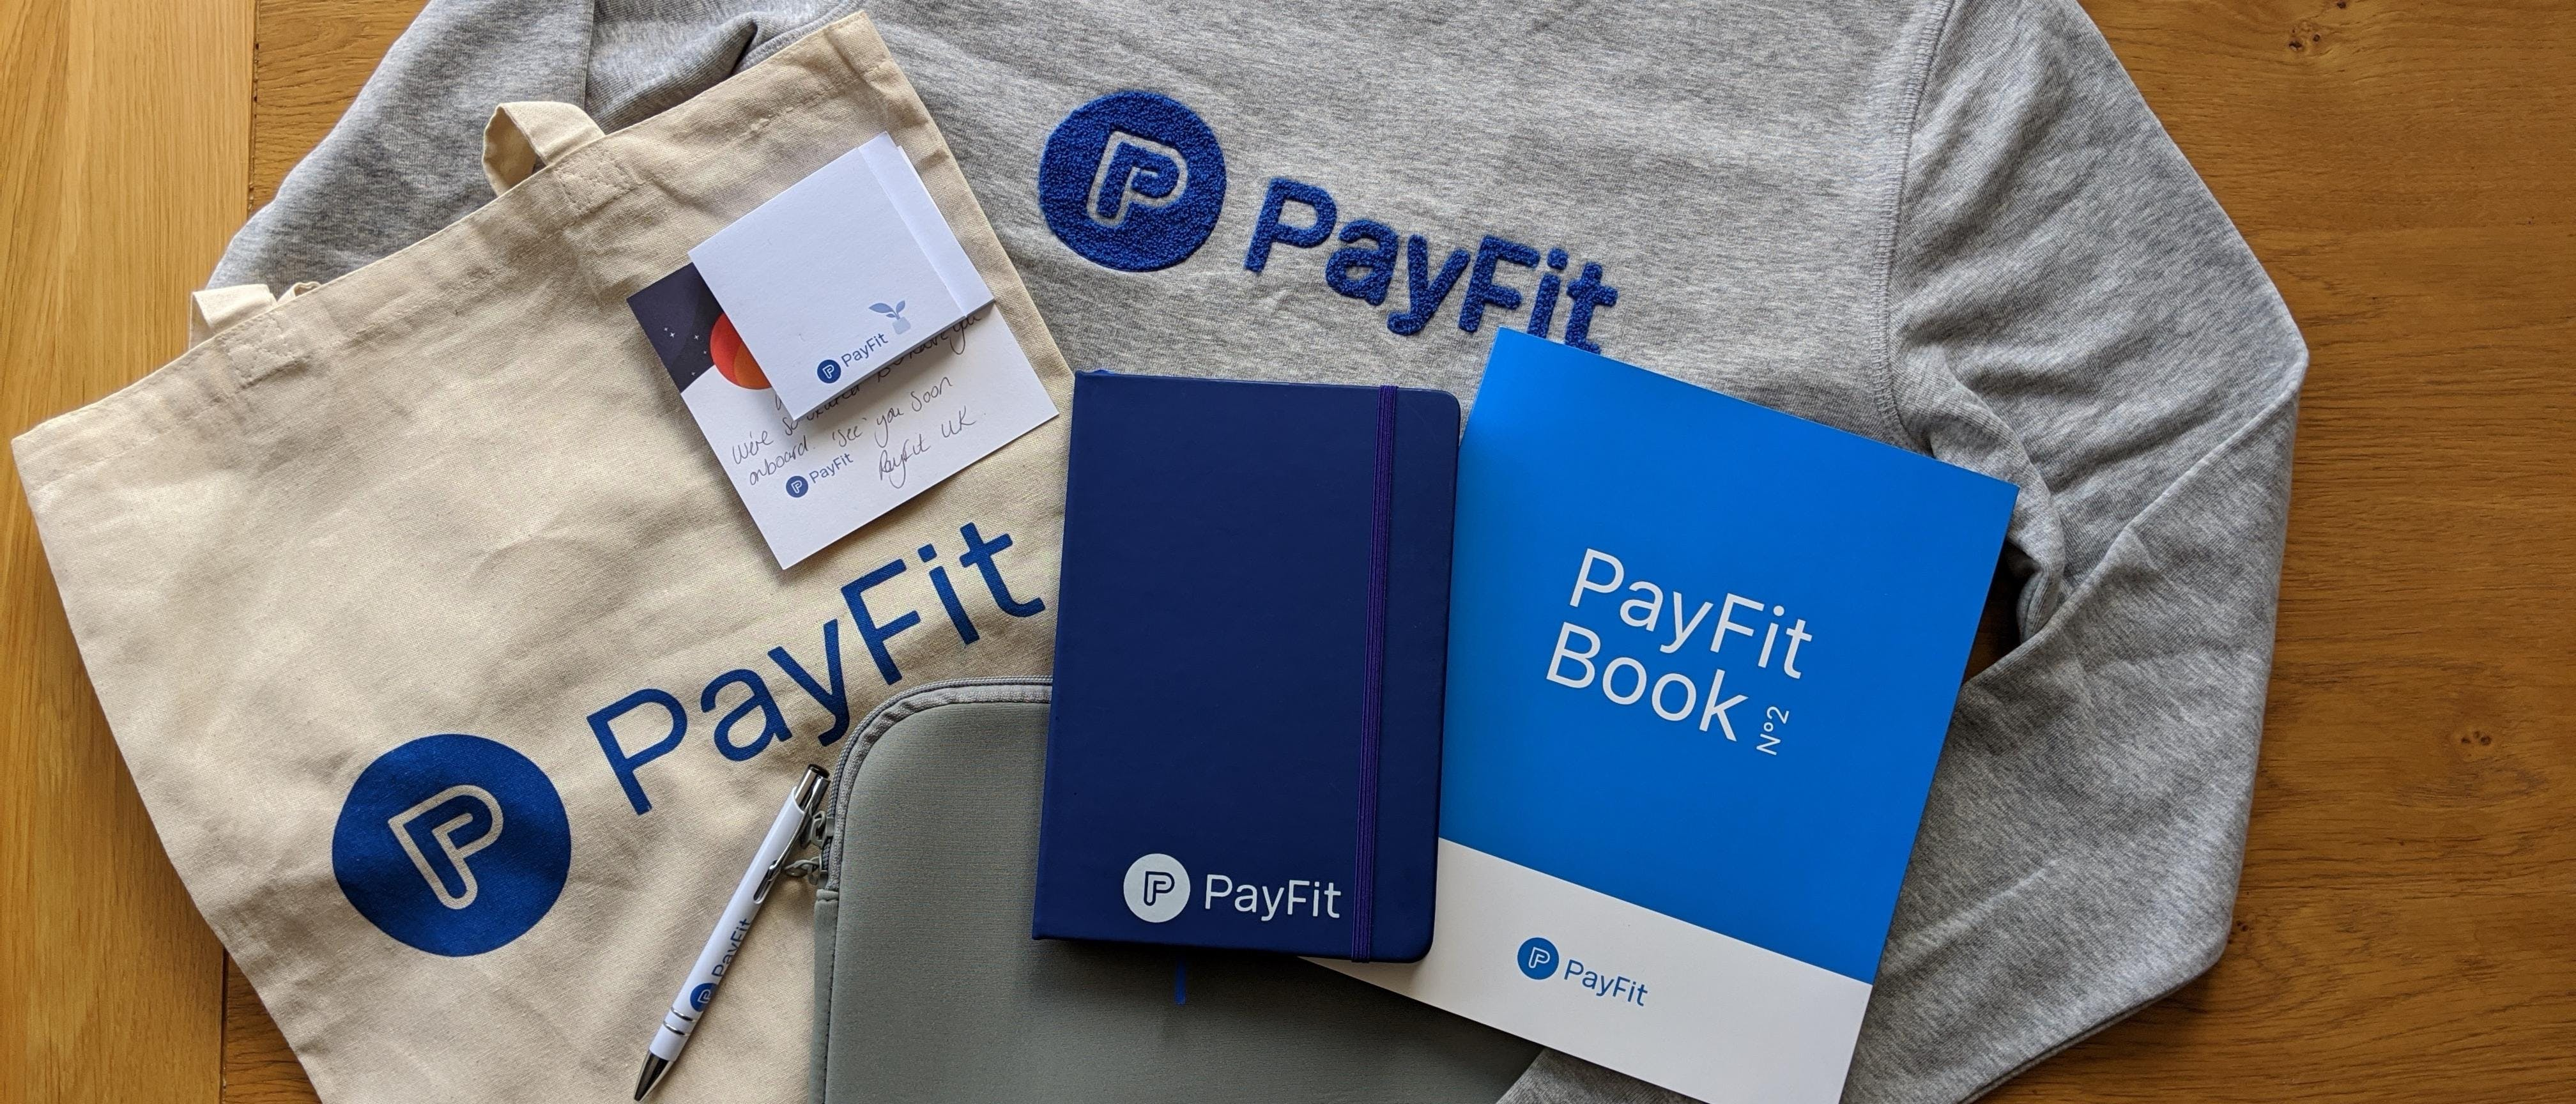 PayFit new starter goodie bag.